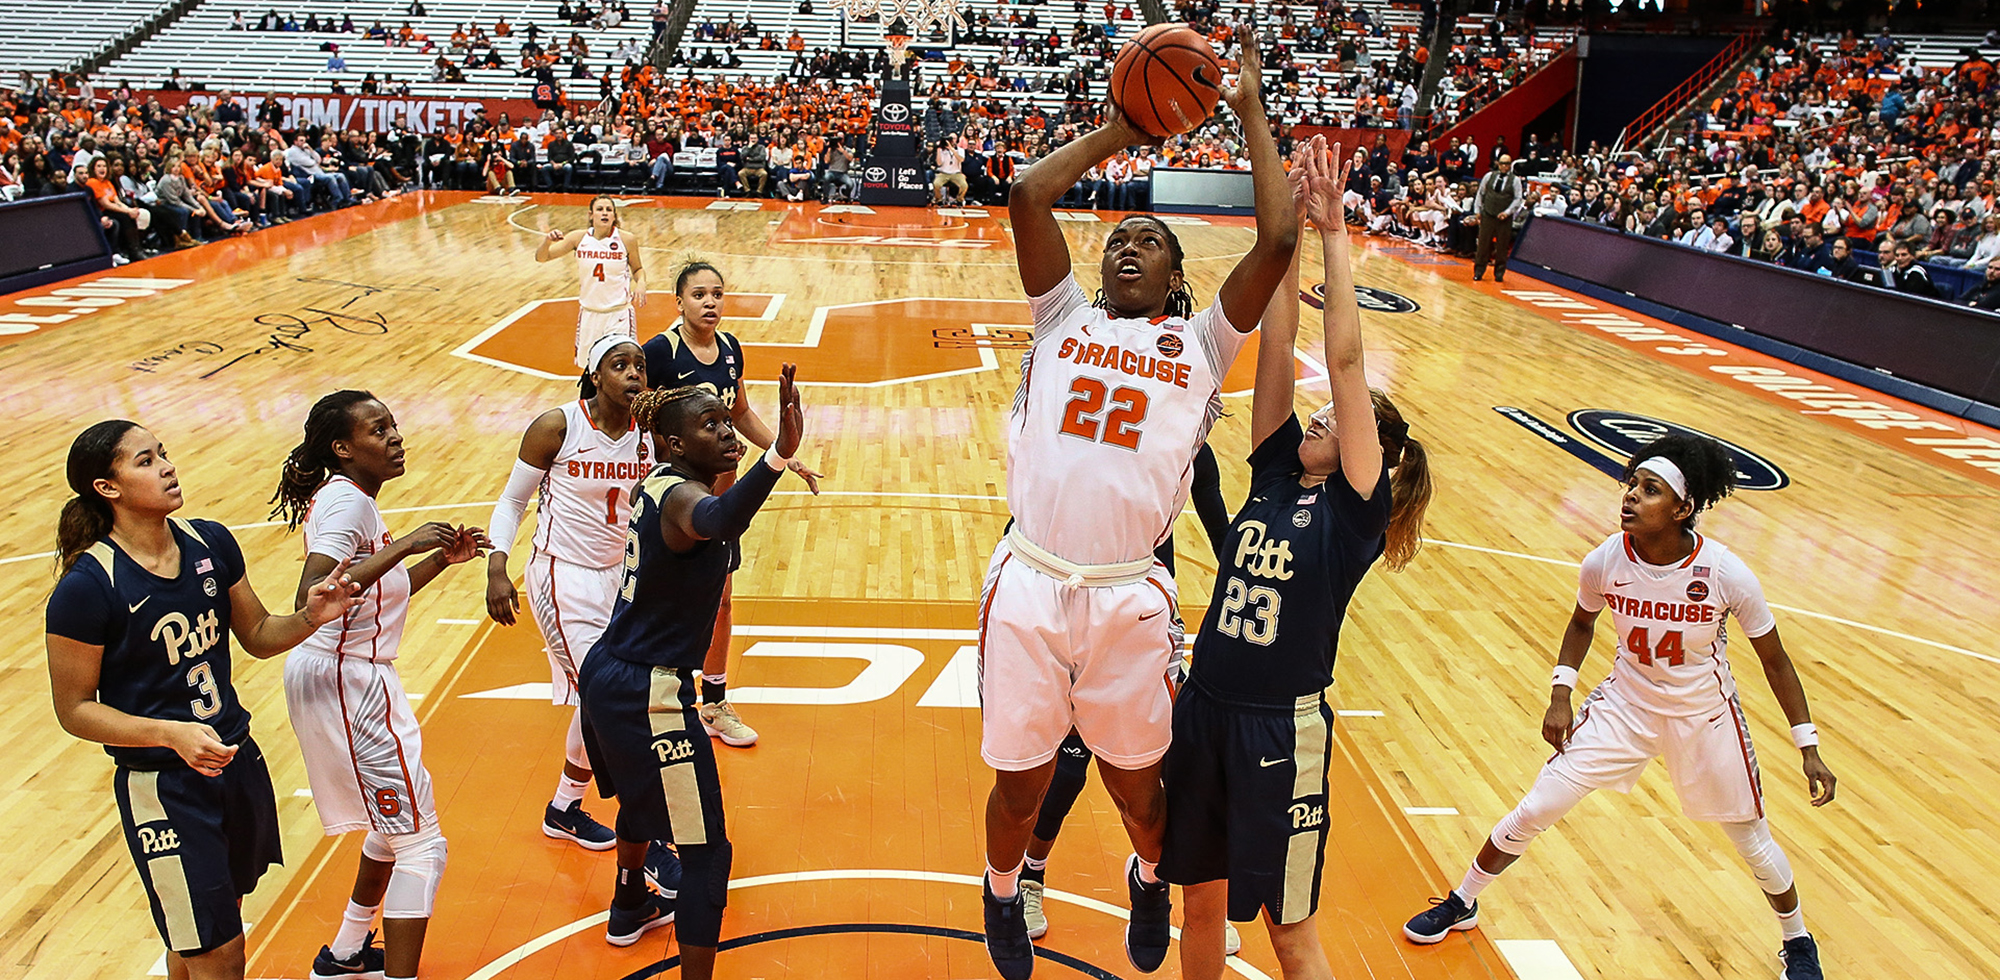 Orange Defeat Pitt Move To 10 0 At Home Syracuse University Athletics